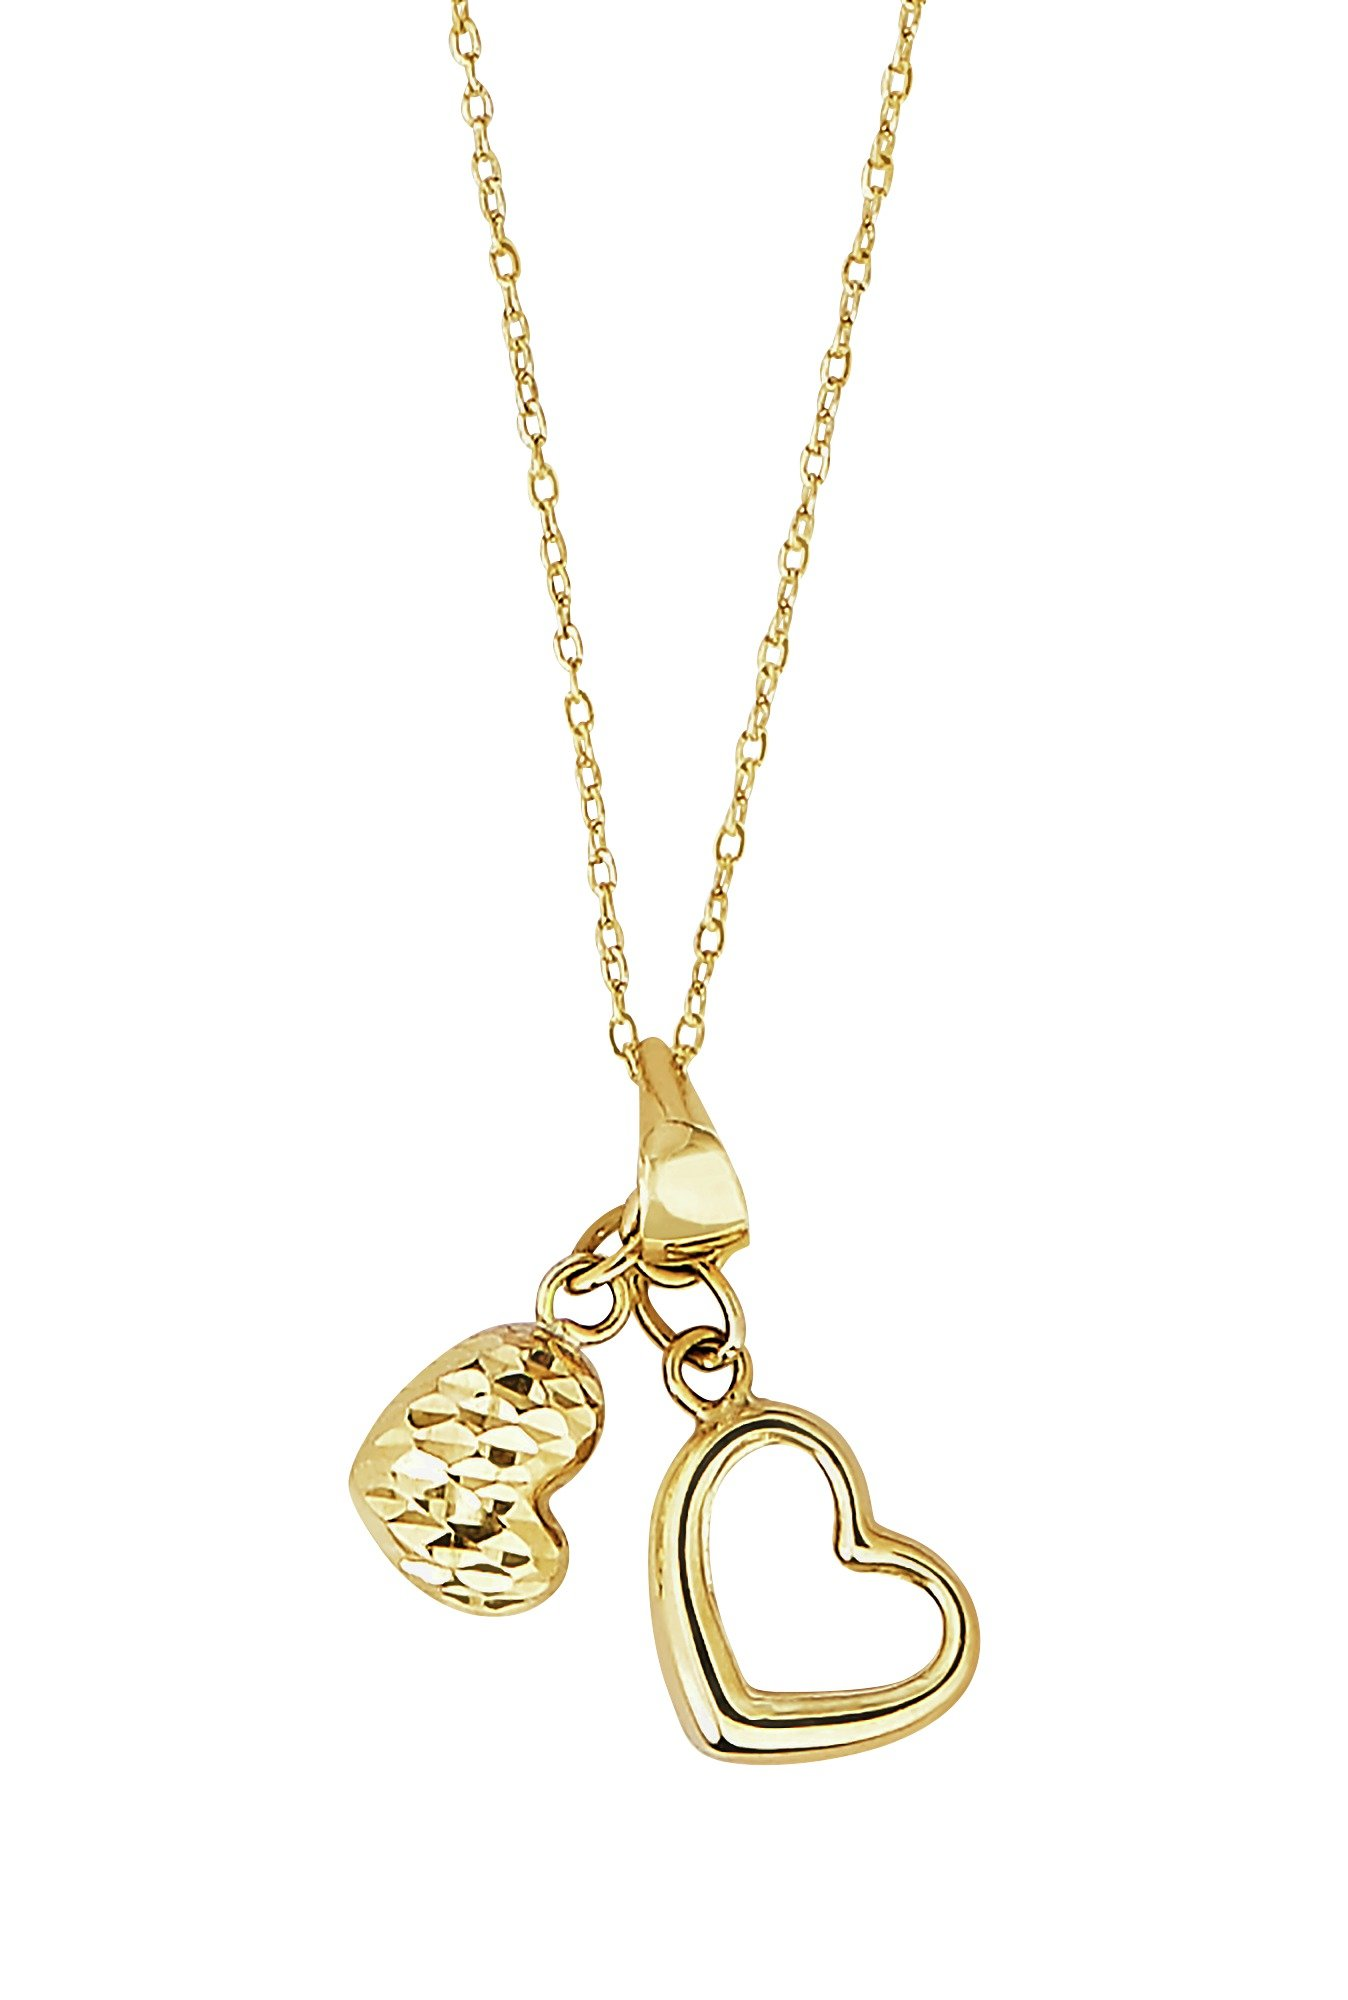 Revere 9ct Gold Heart Multi Charm Pendant 18 Inch Necklace